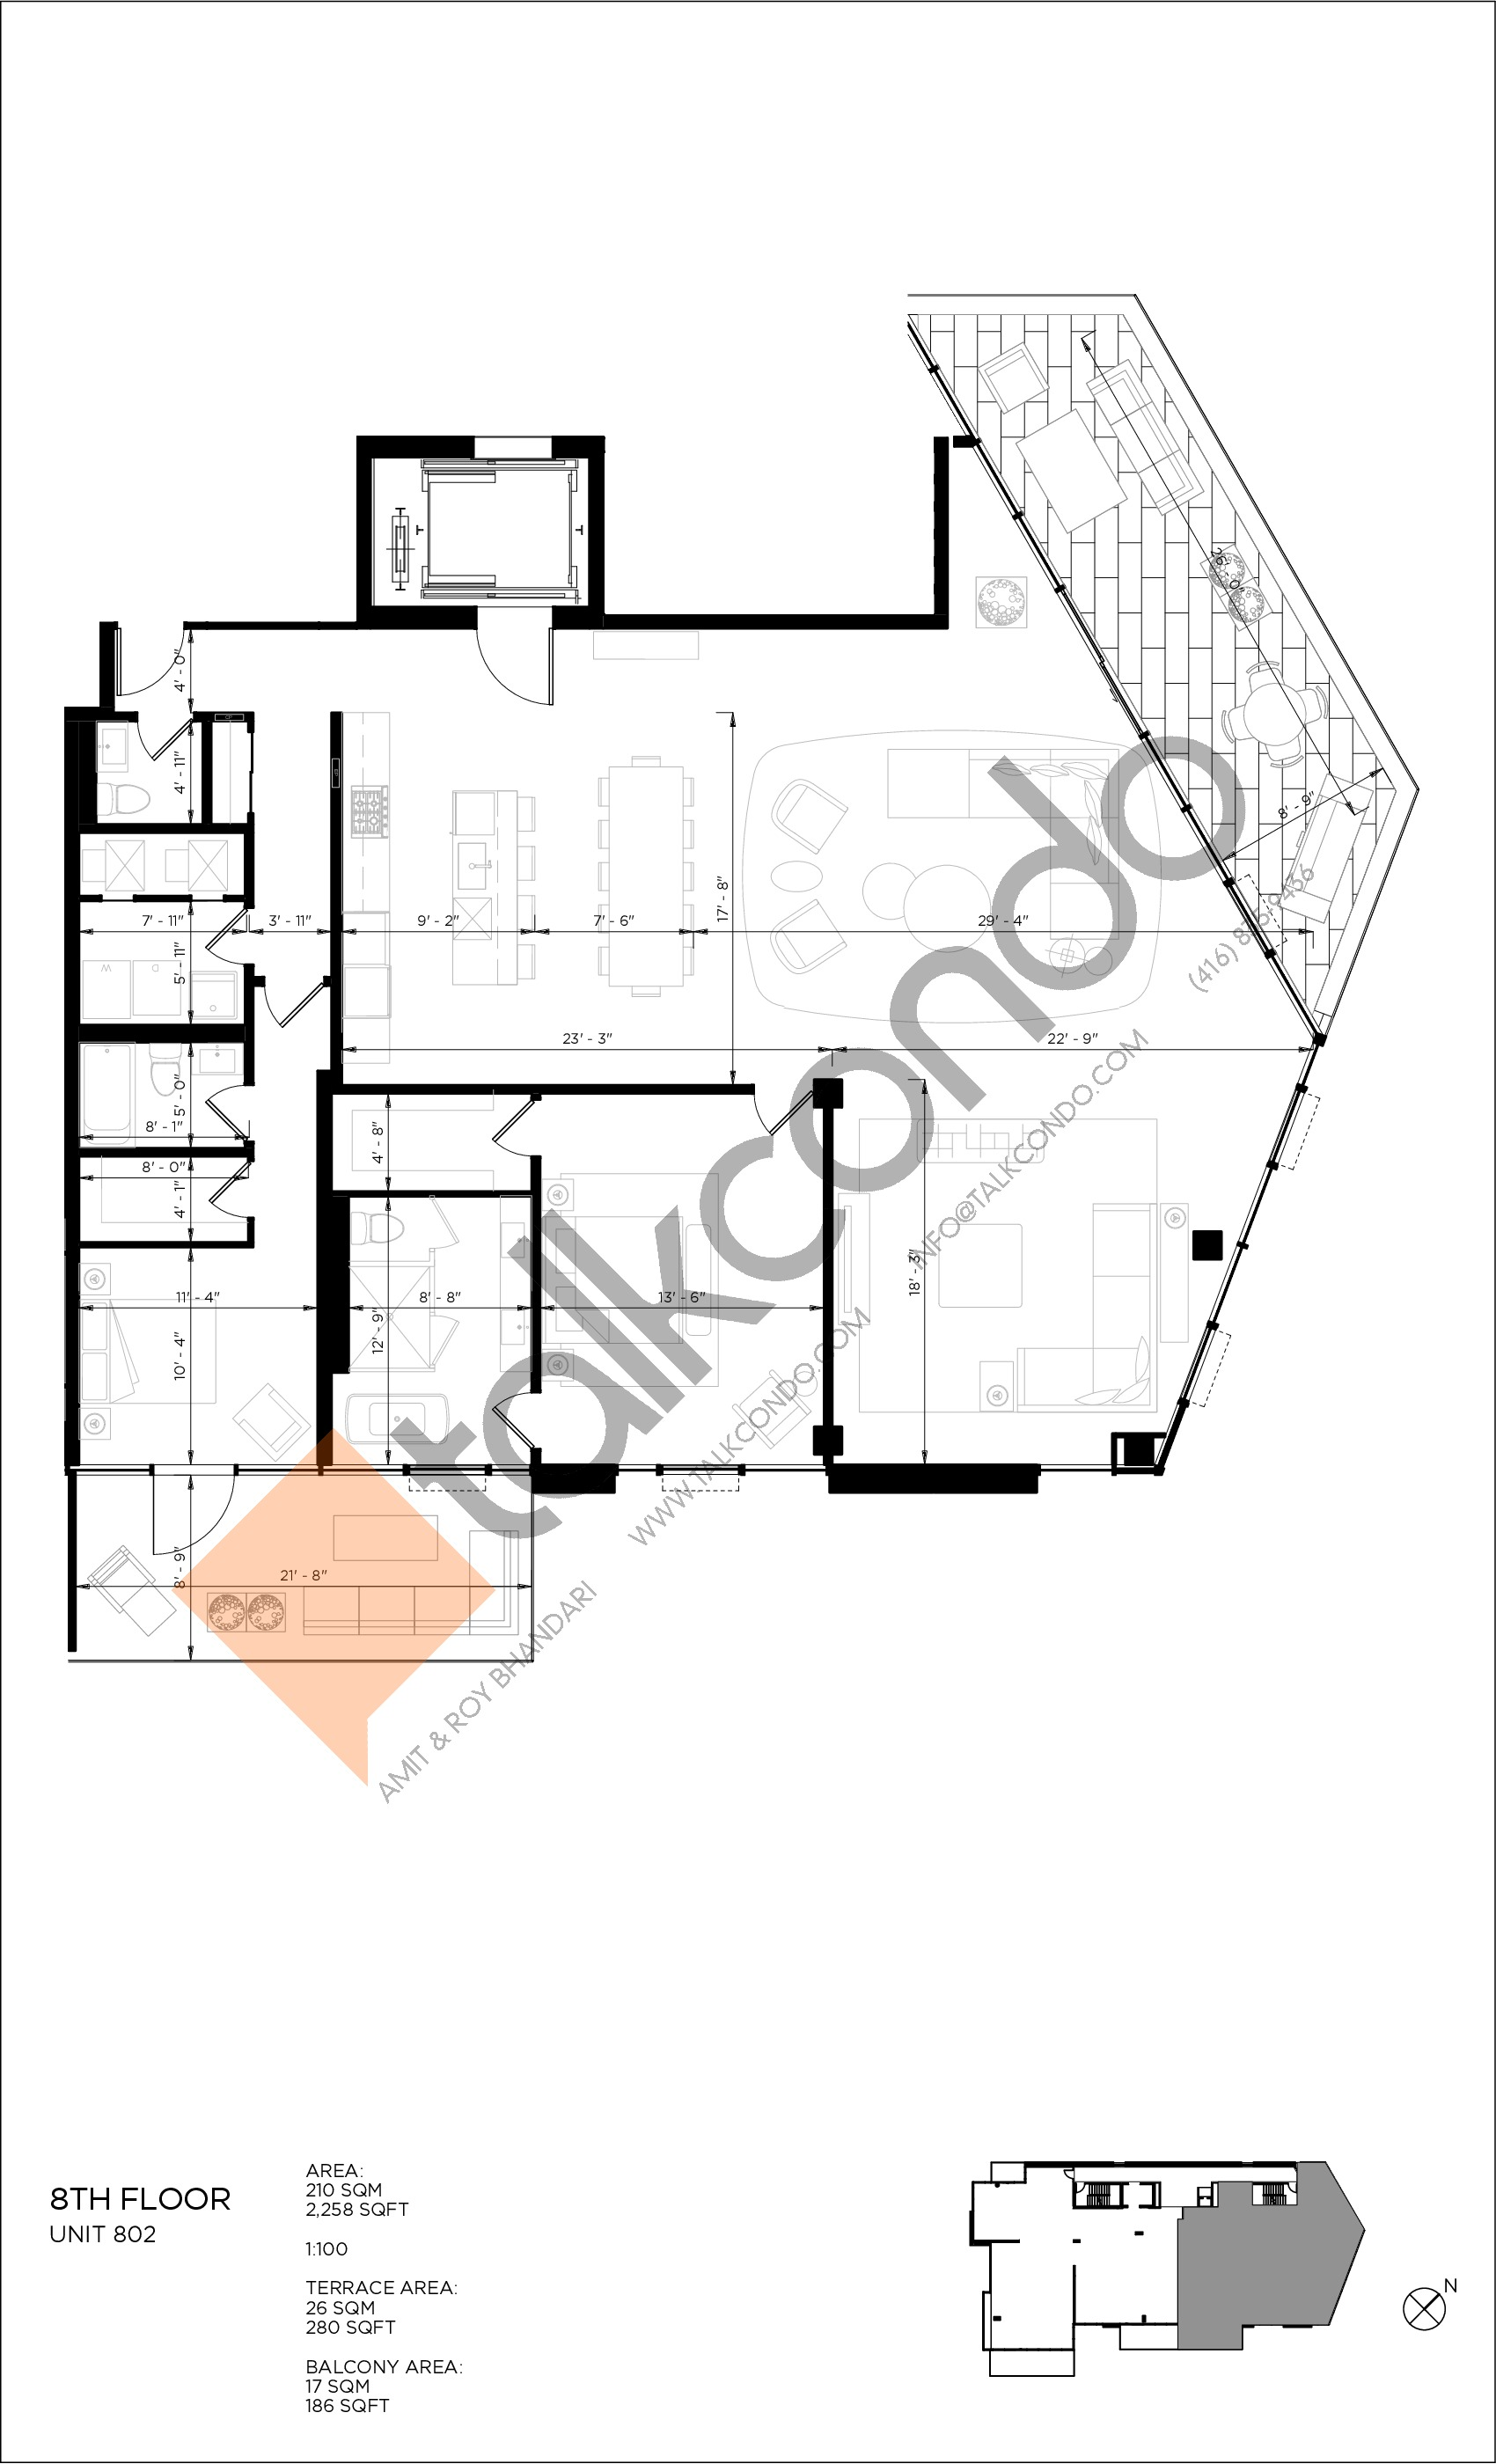 Unit 802 Floor Plan at 346 Davenport Condos - 2258 sq.ft